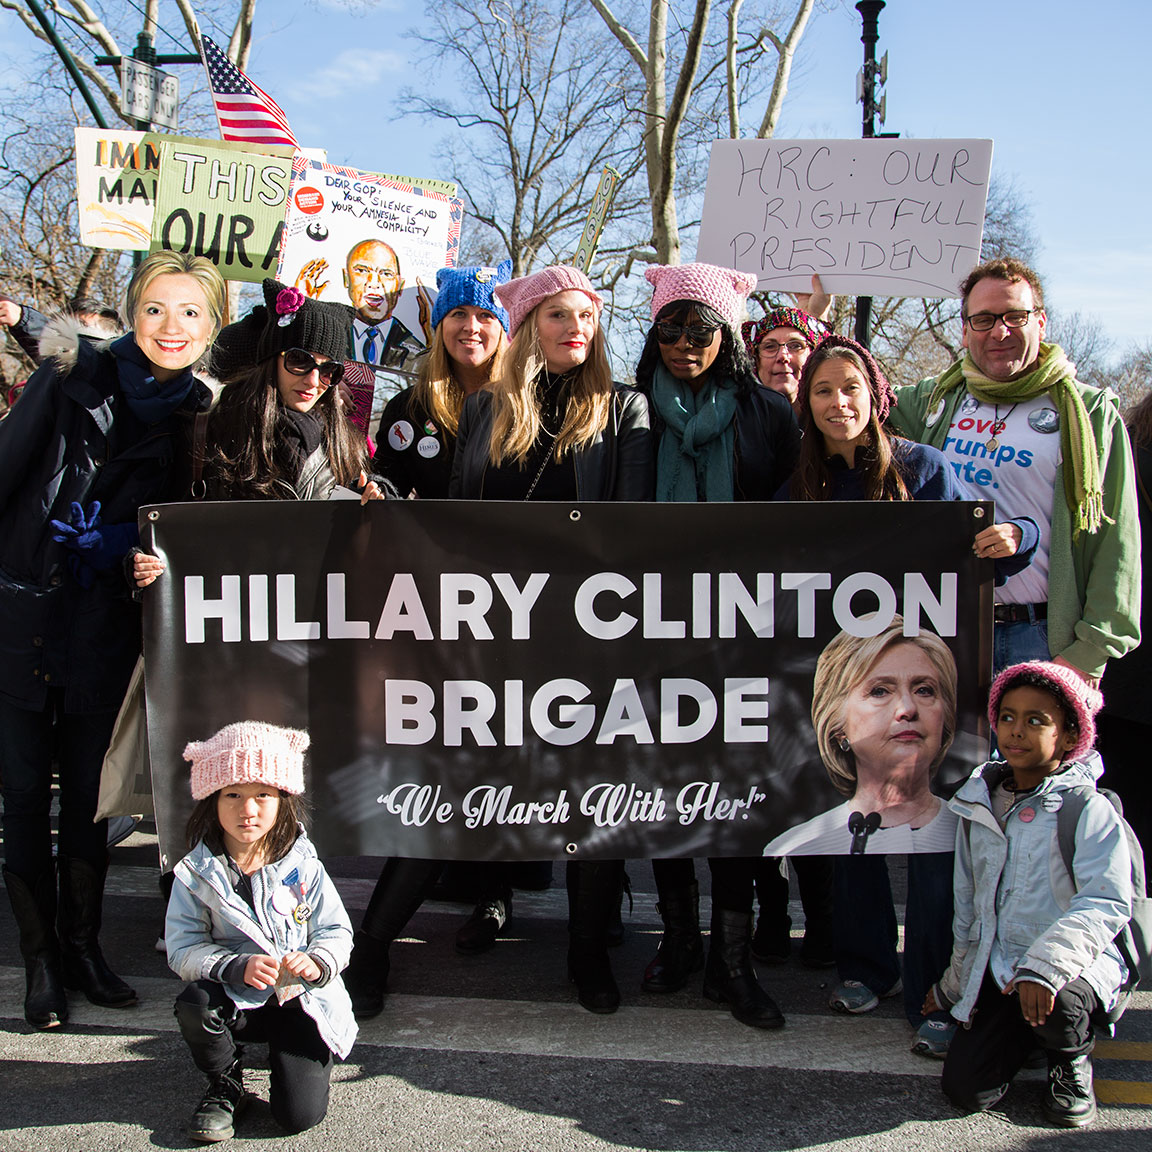 Members from the HRC Brigade gather at West 72nd Street & Central Park West. Photo and banner by  Kristen Blush .